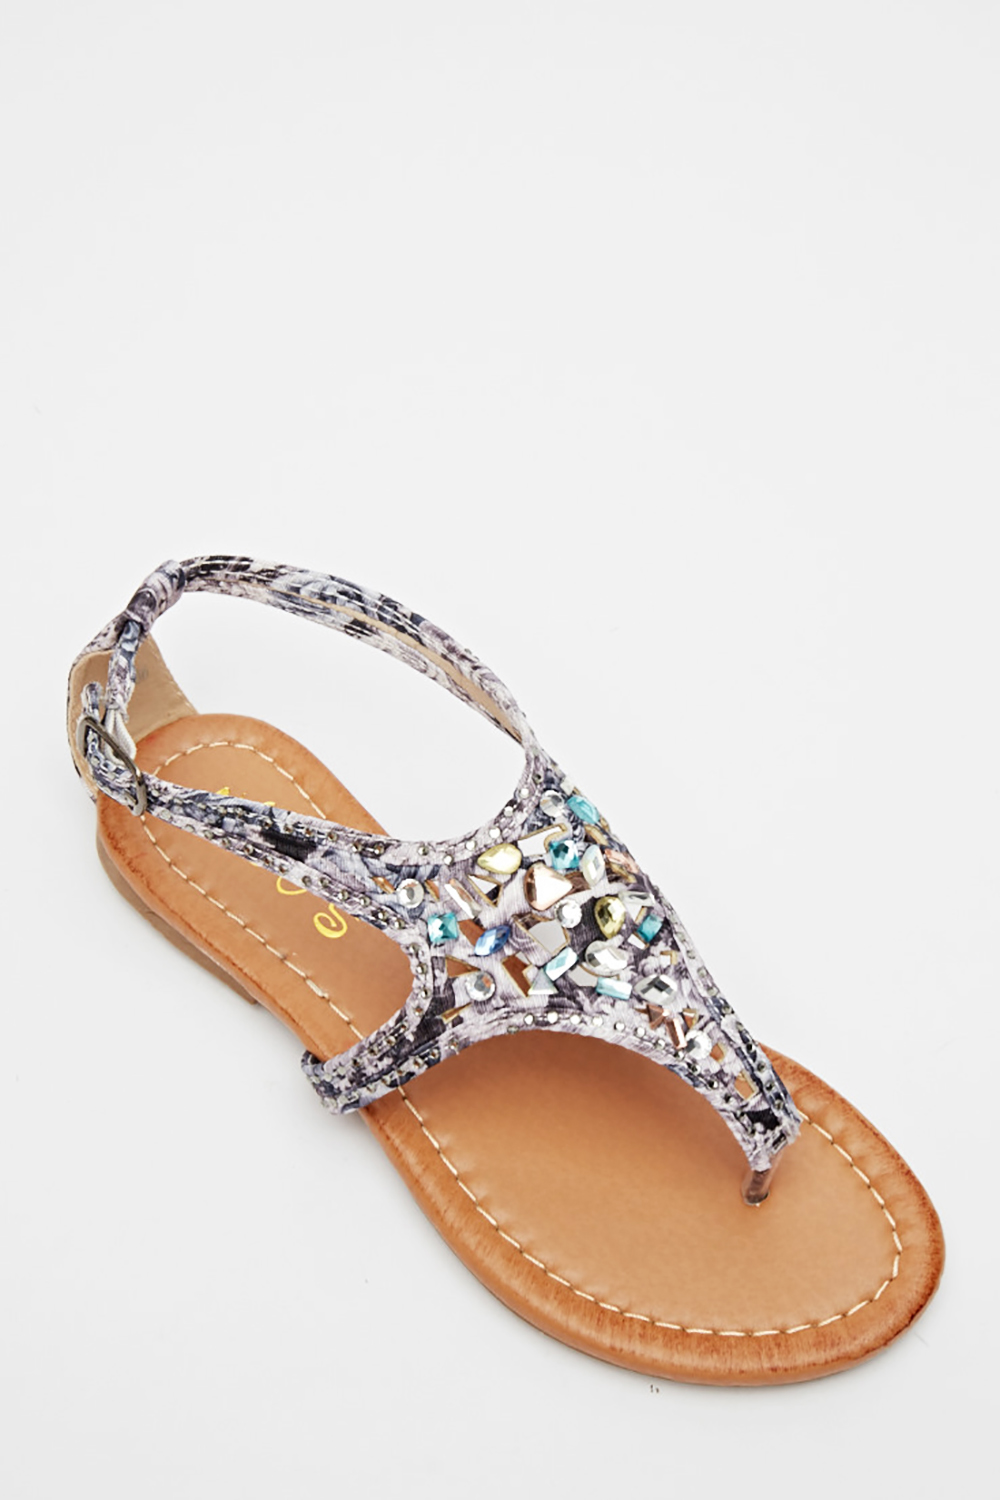 c145a6790 Cut Out Embellished Flip Flop Sandals - Just £5